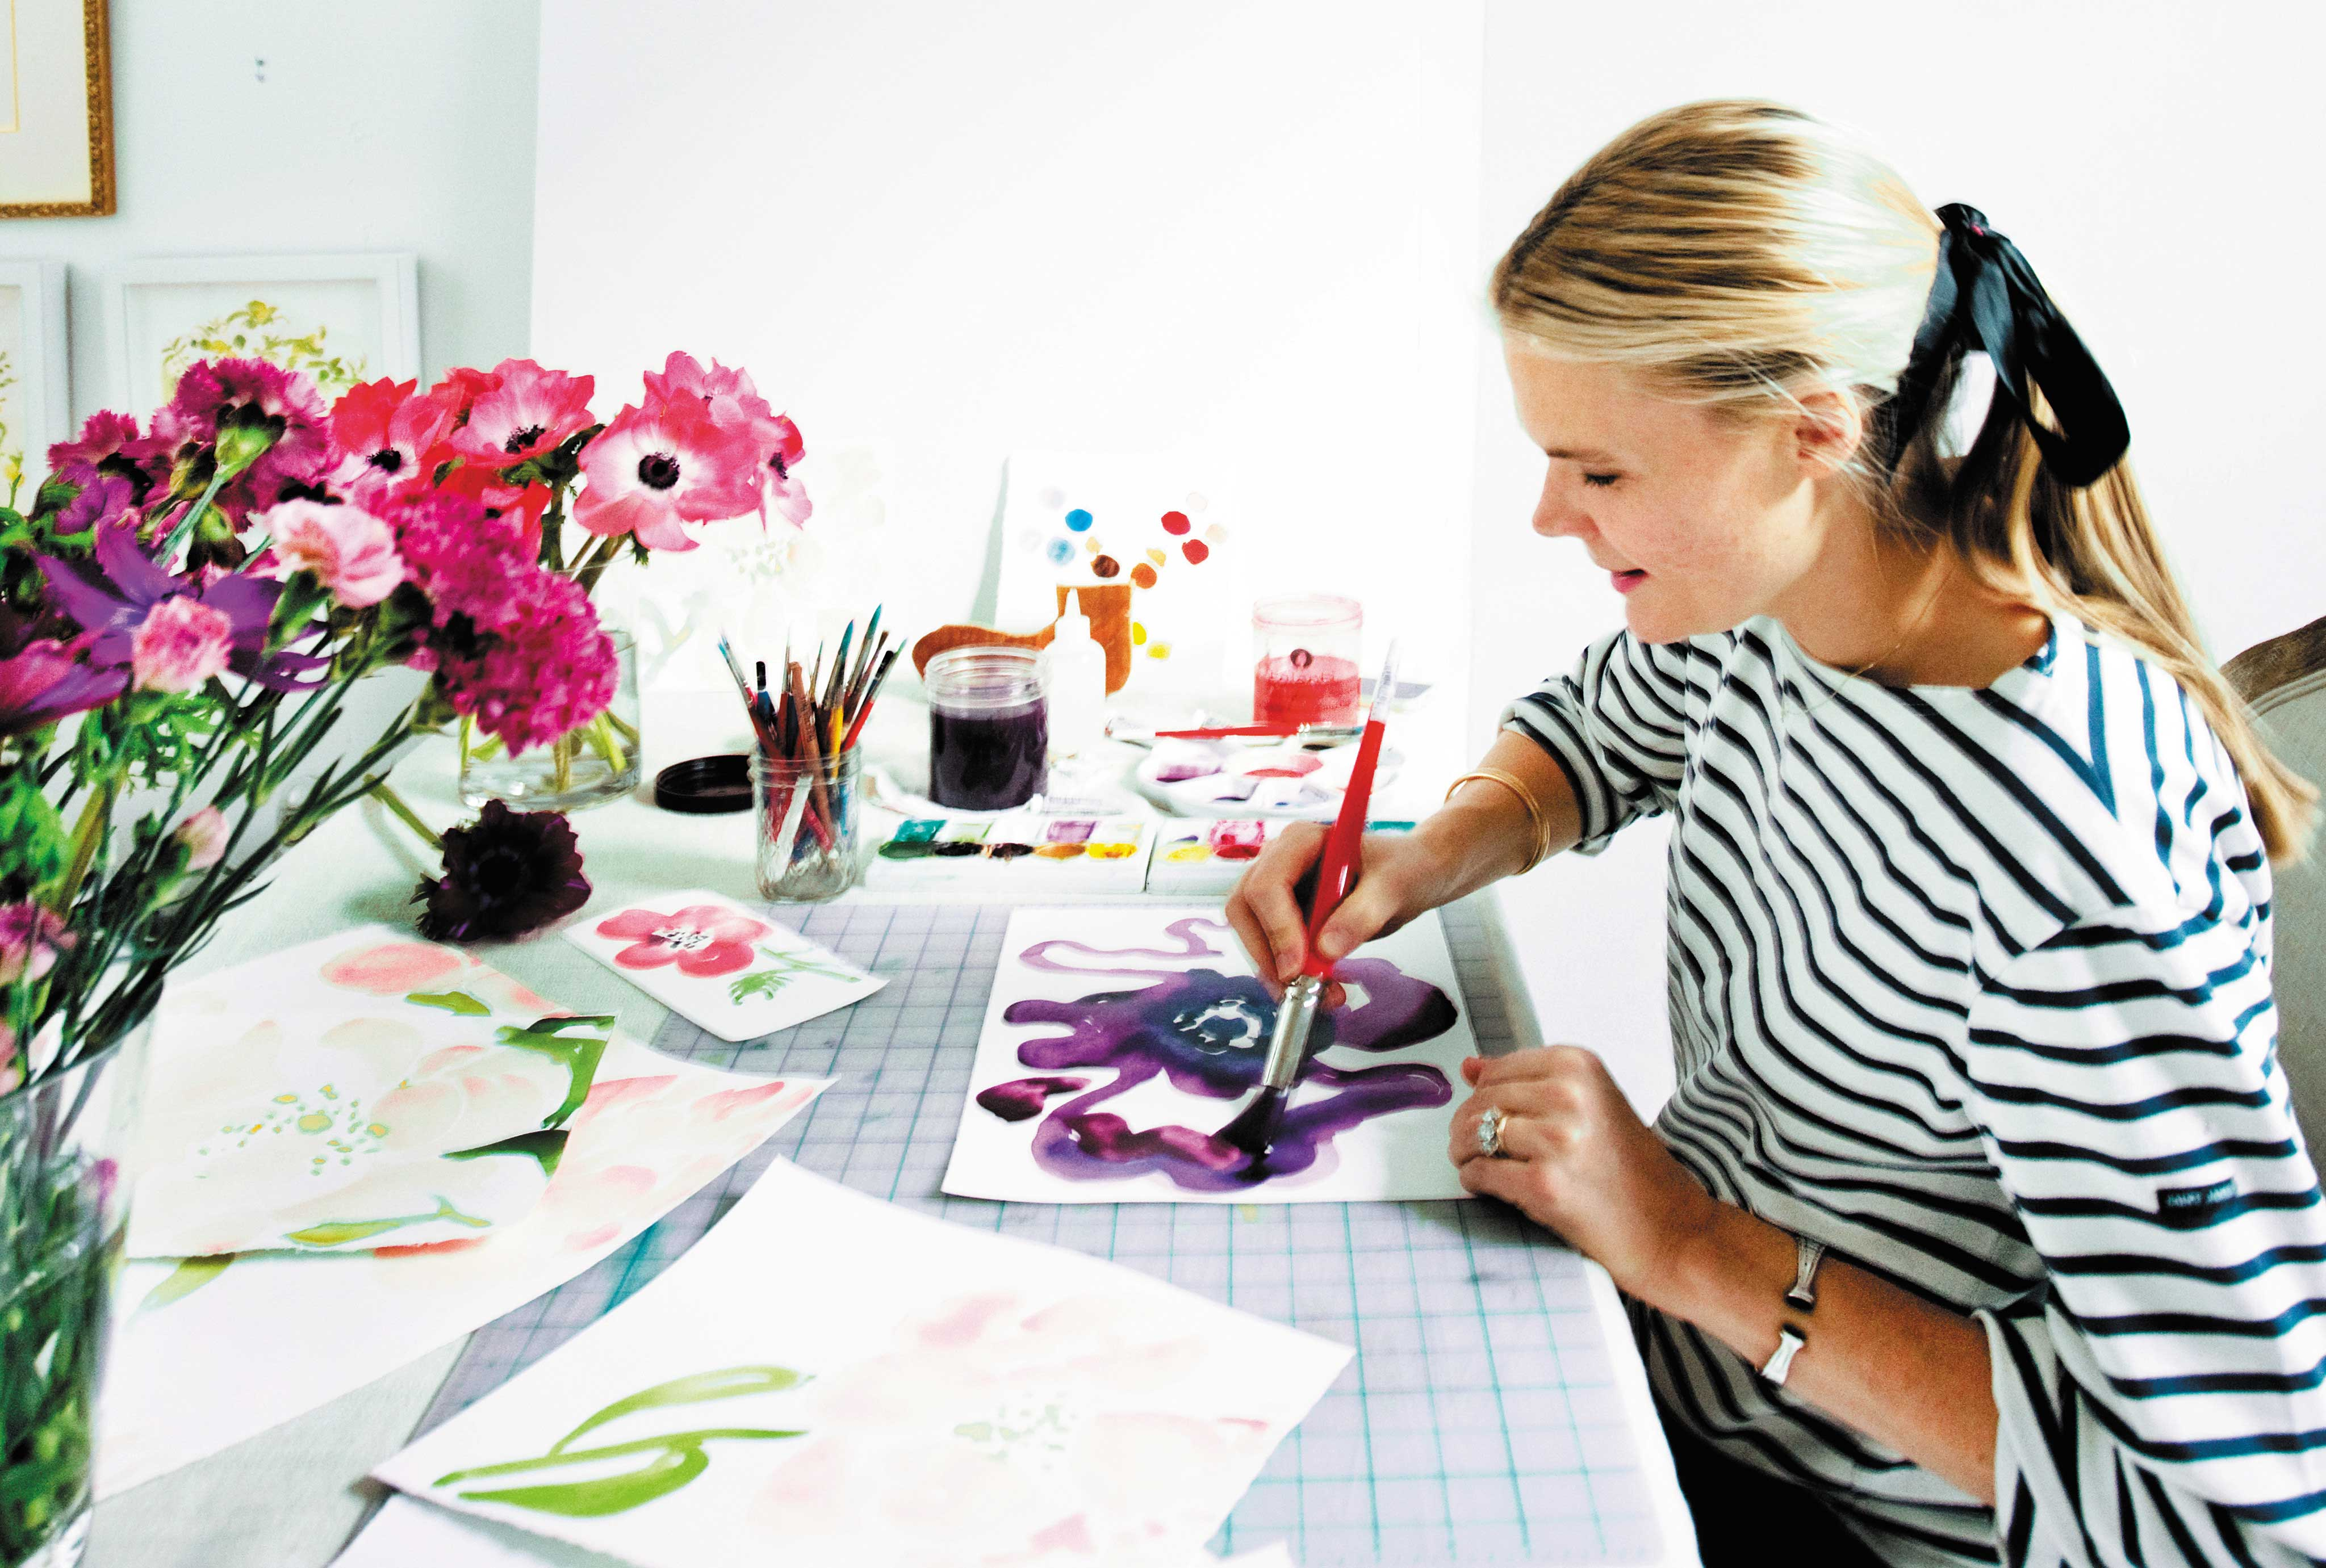 New York-Based Artist and Fashion Creative Kate Schelter is an Expert in Finding (and Celebrating!) Your Own Personal Style